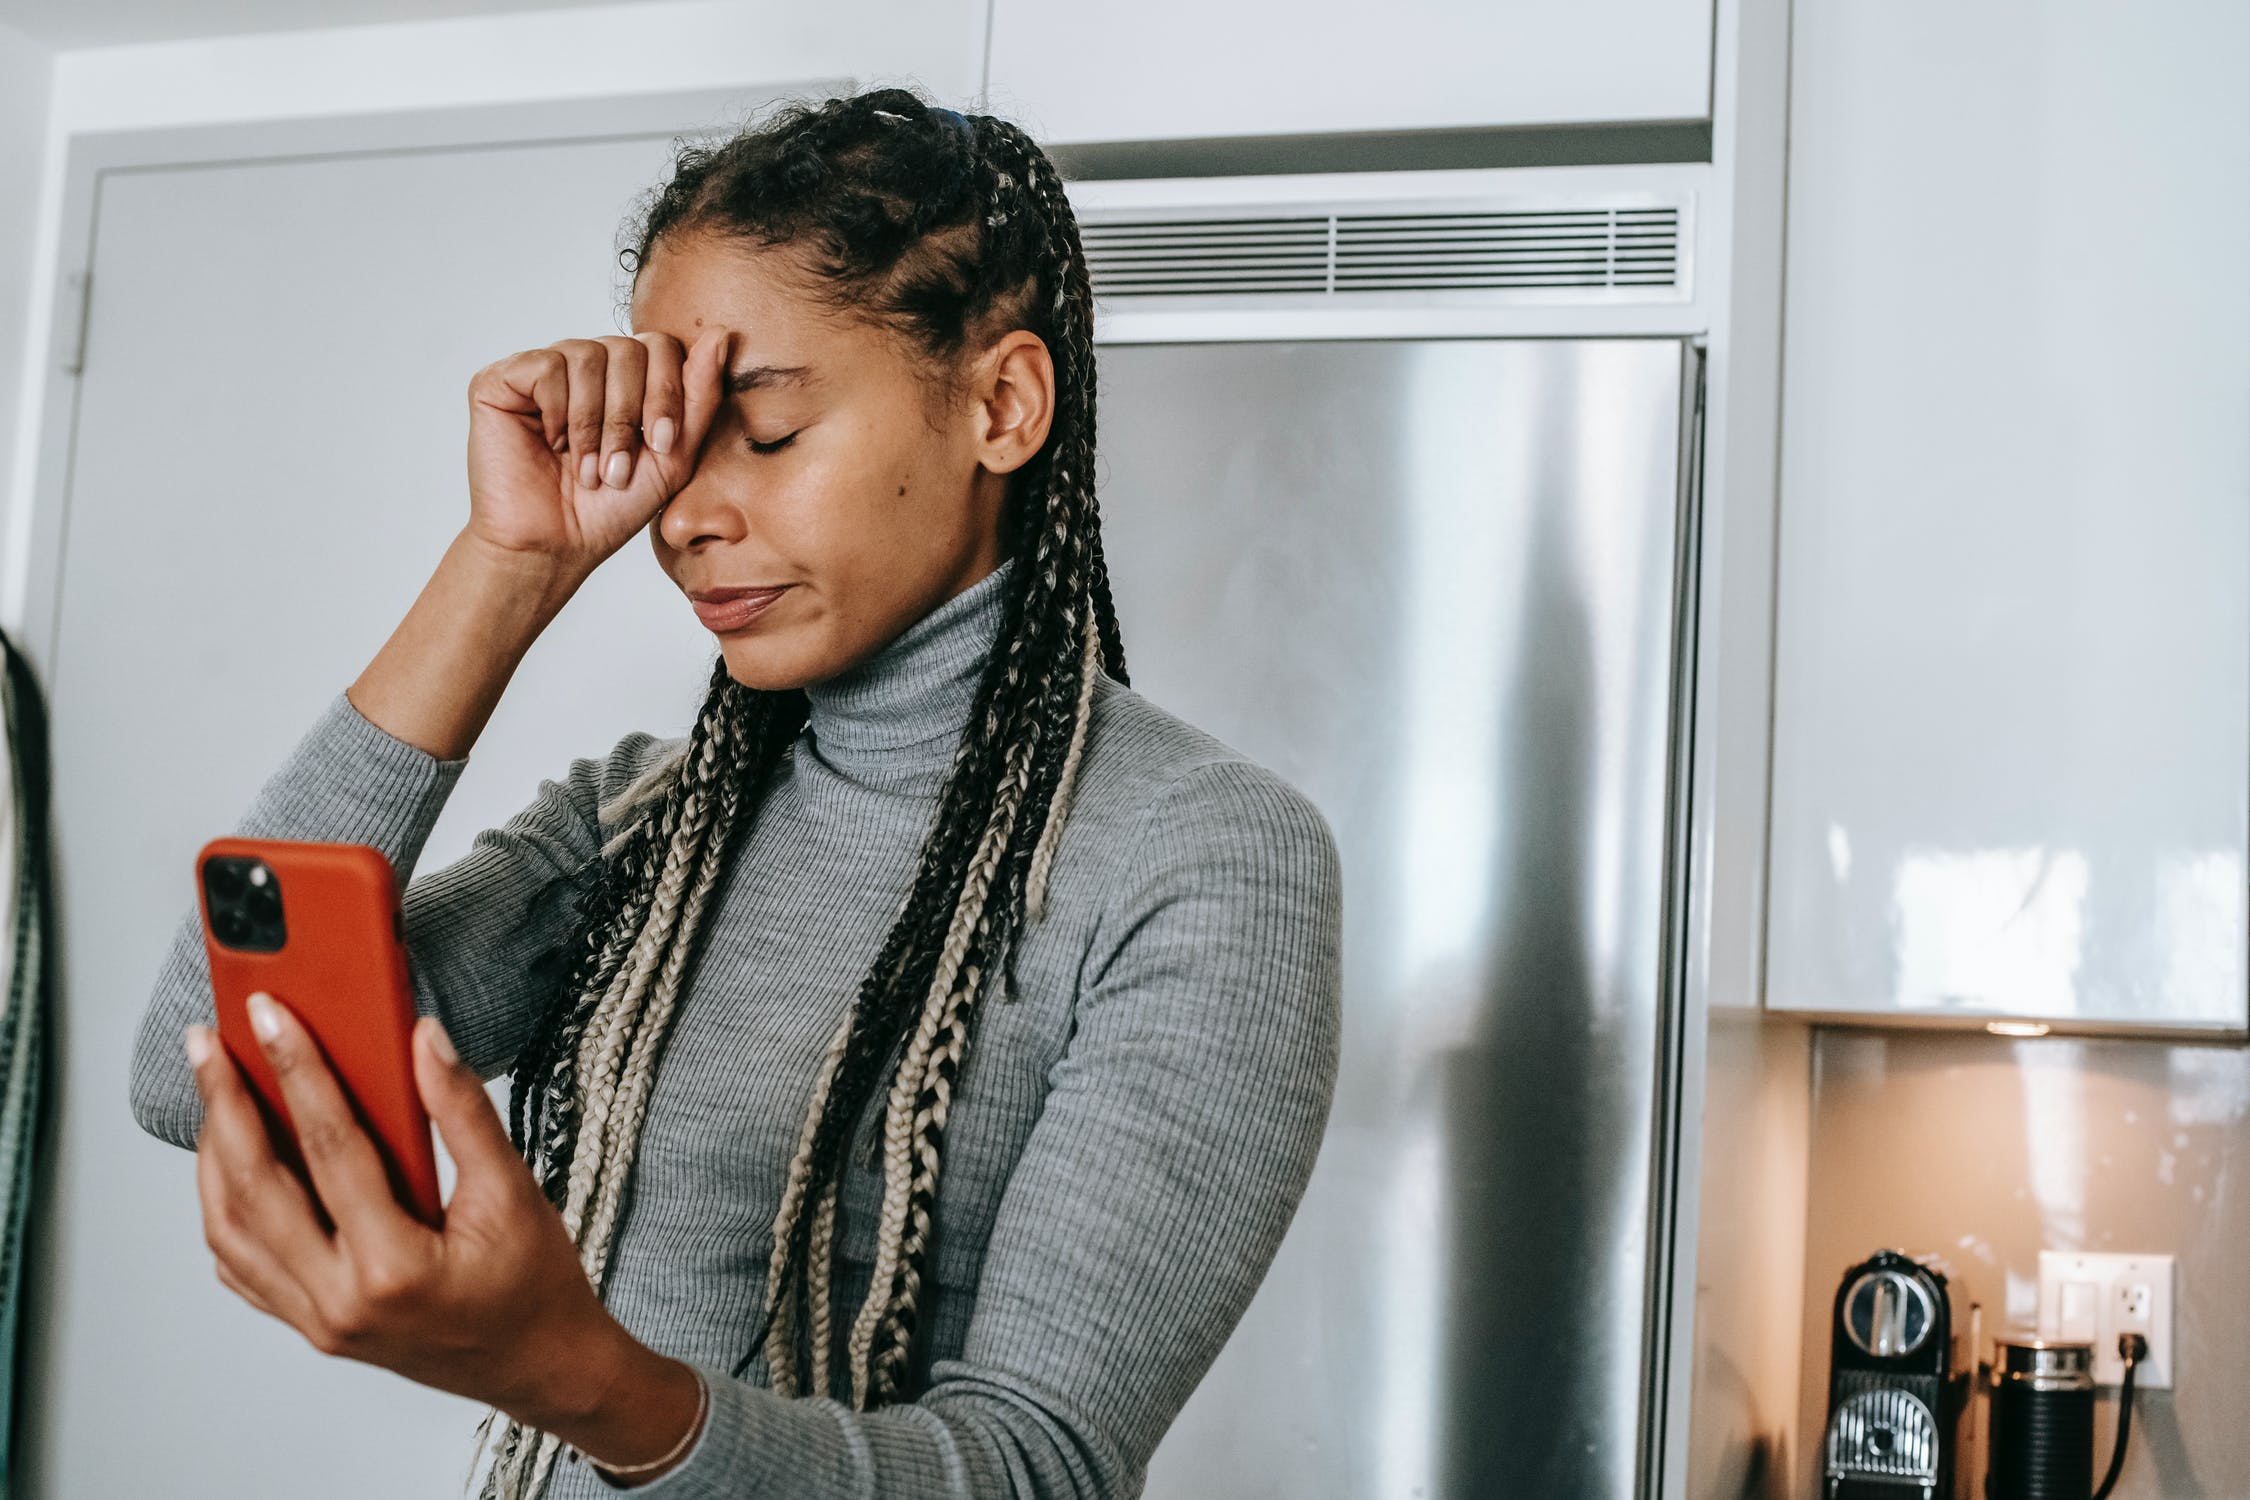 Woman looking frustrated on phone